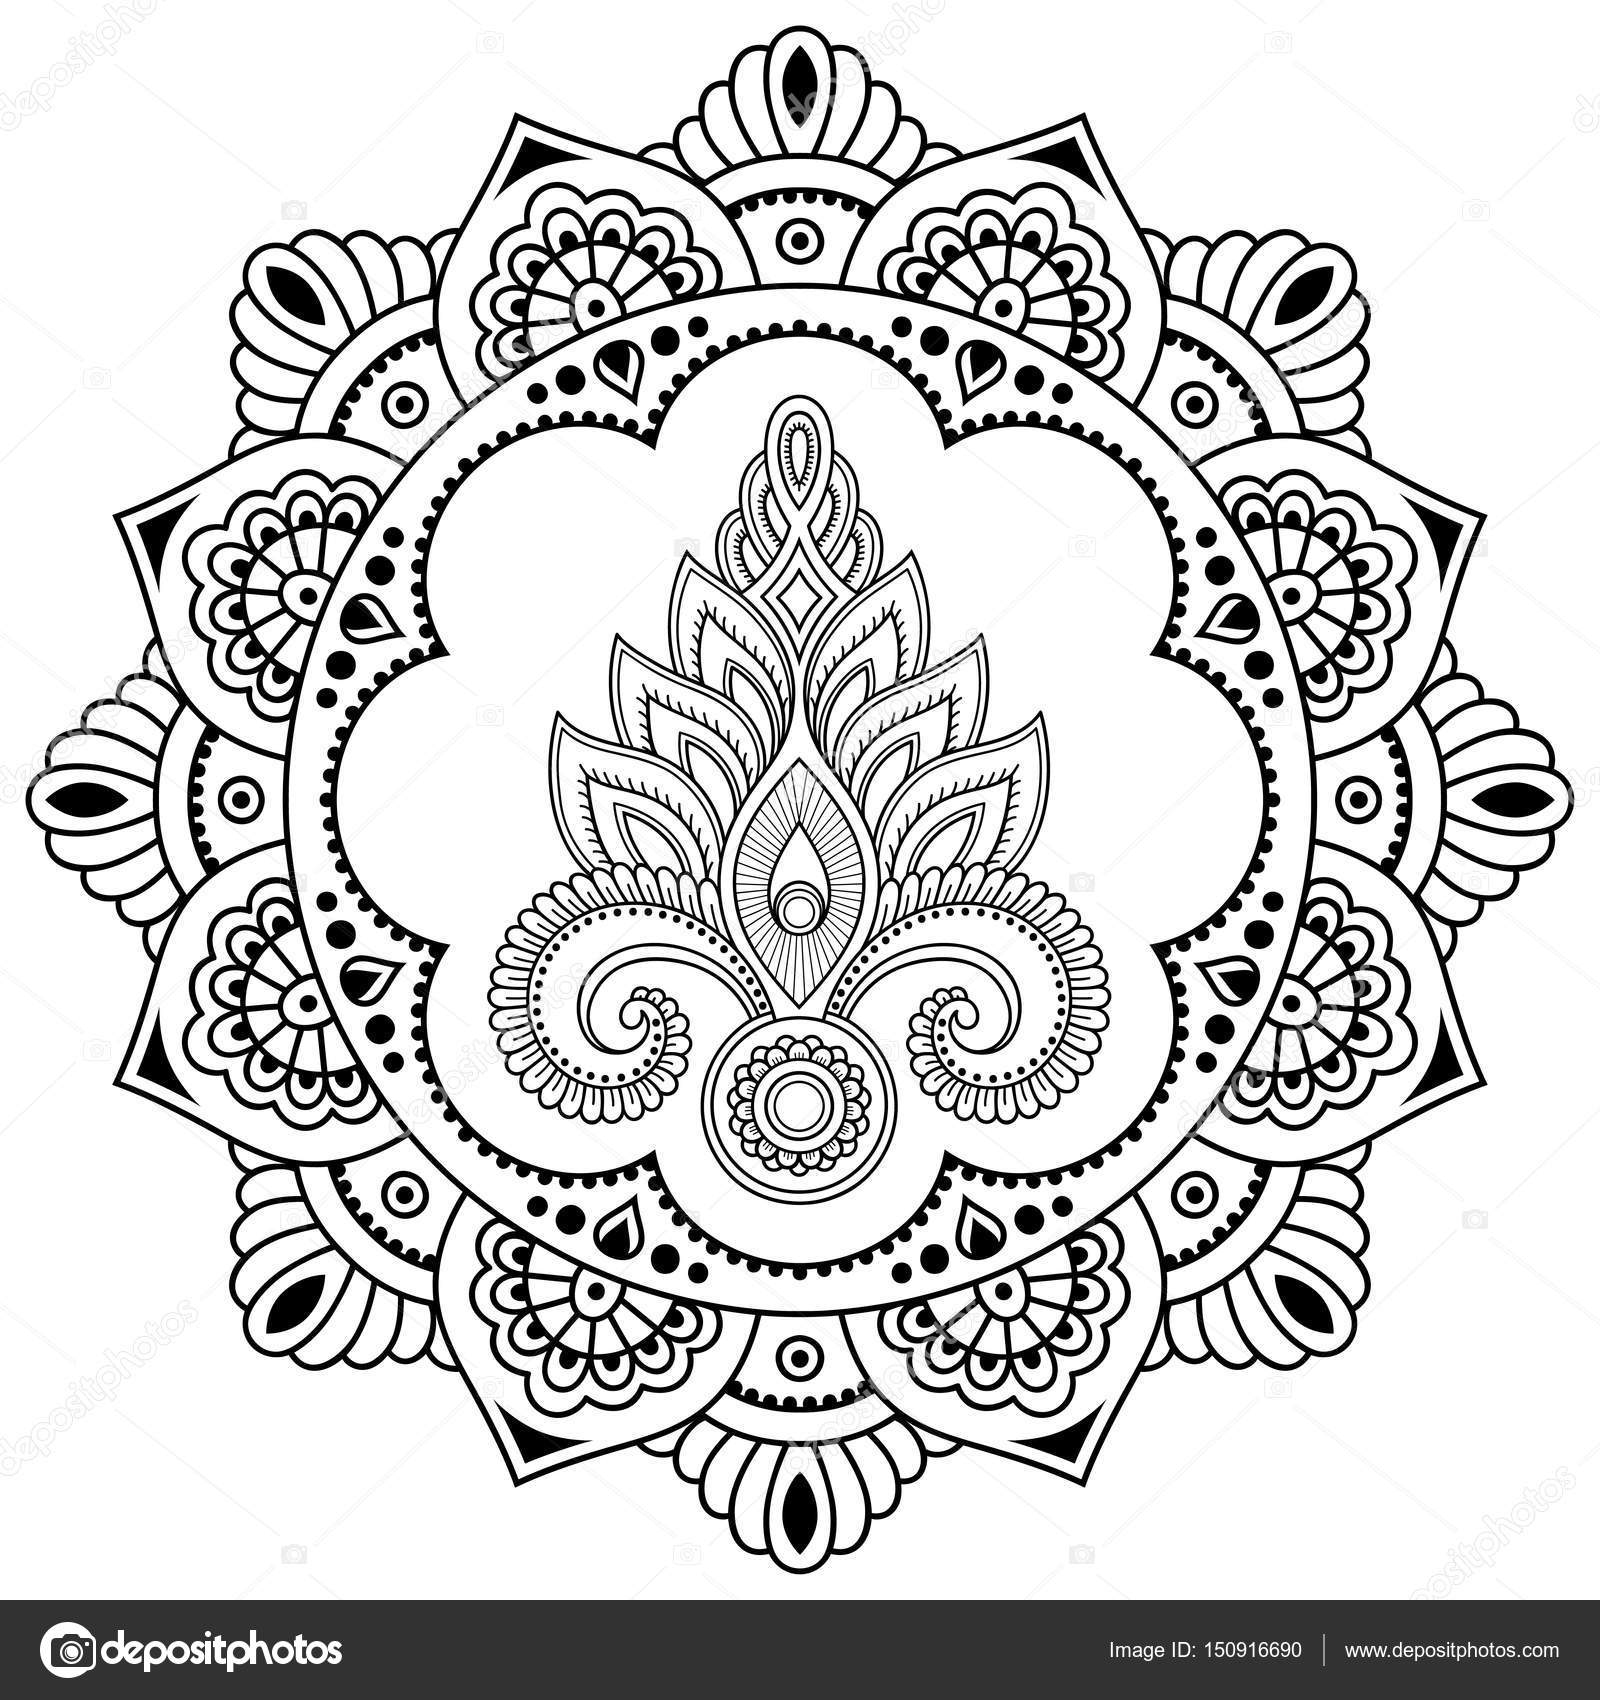 een circulaire patroon in de vorm van een mandala henna tattoo bloem sjabloon in indiase stijl. Black Bedroom Furniture Sets. Home Design Ideas